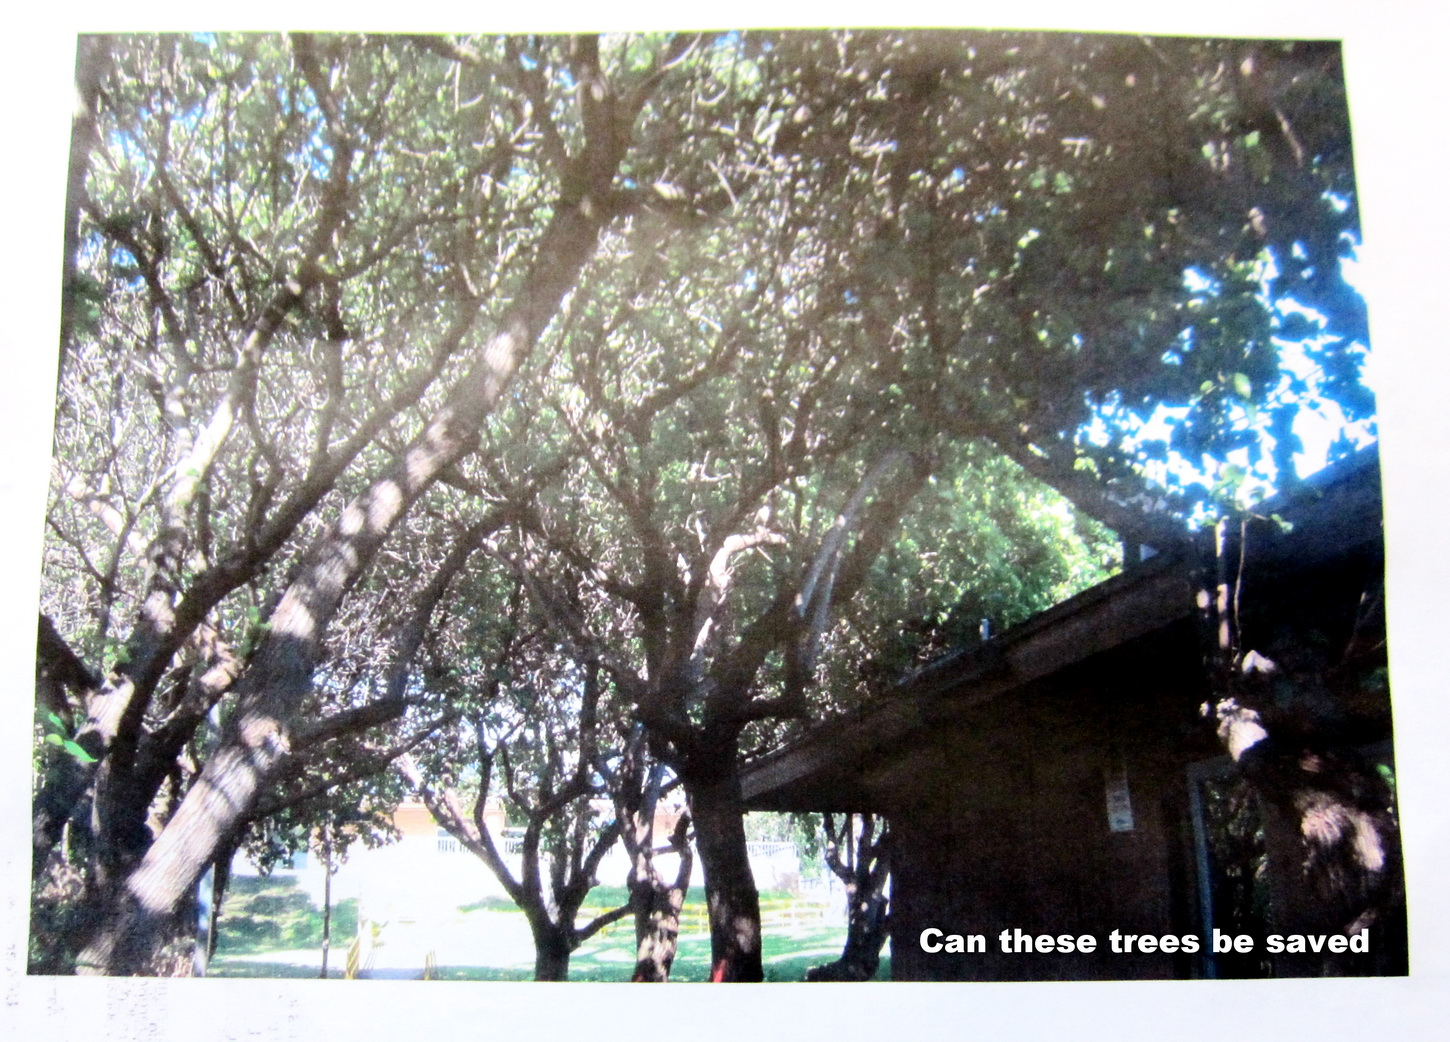 Are all those trees at Community Center to be chopped? Let's check before removing